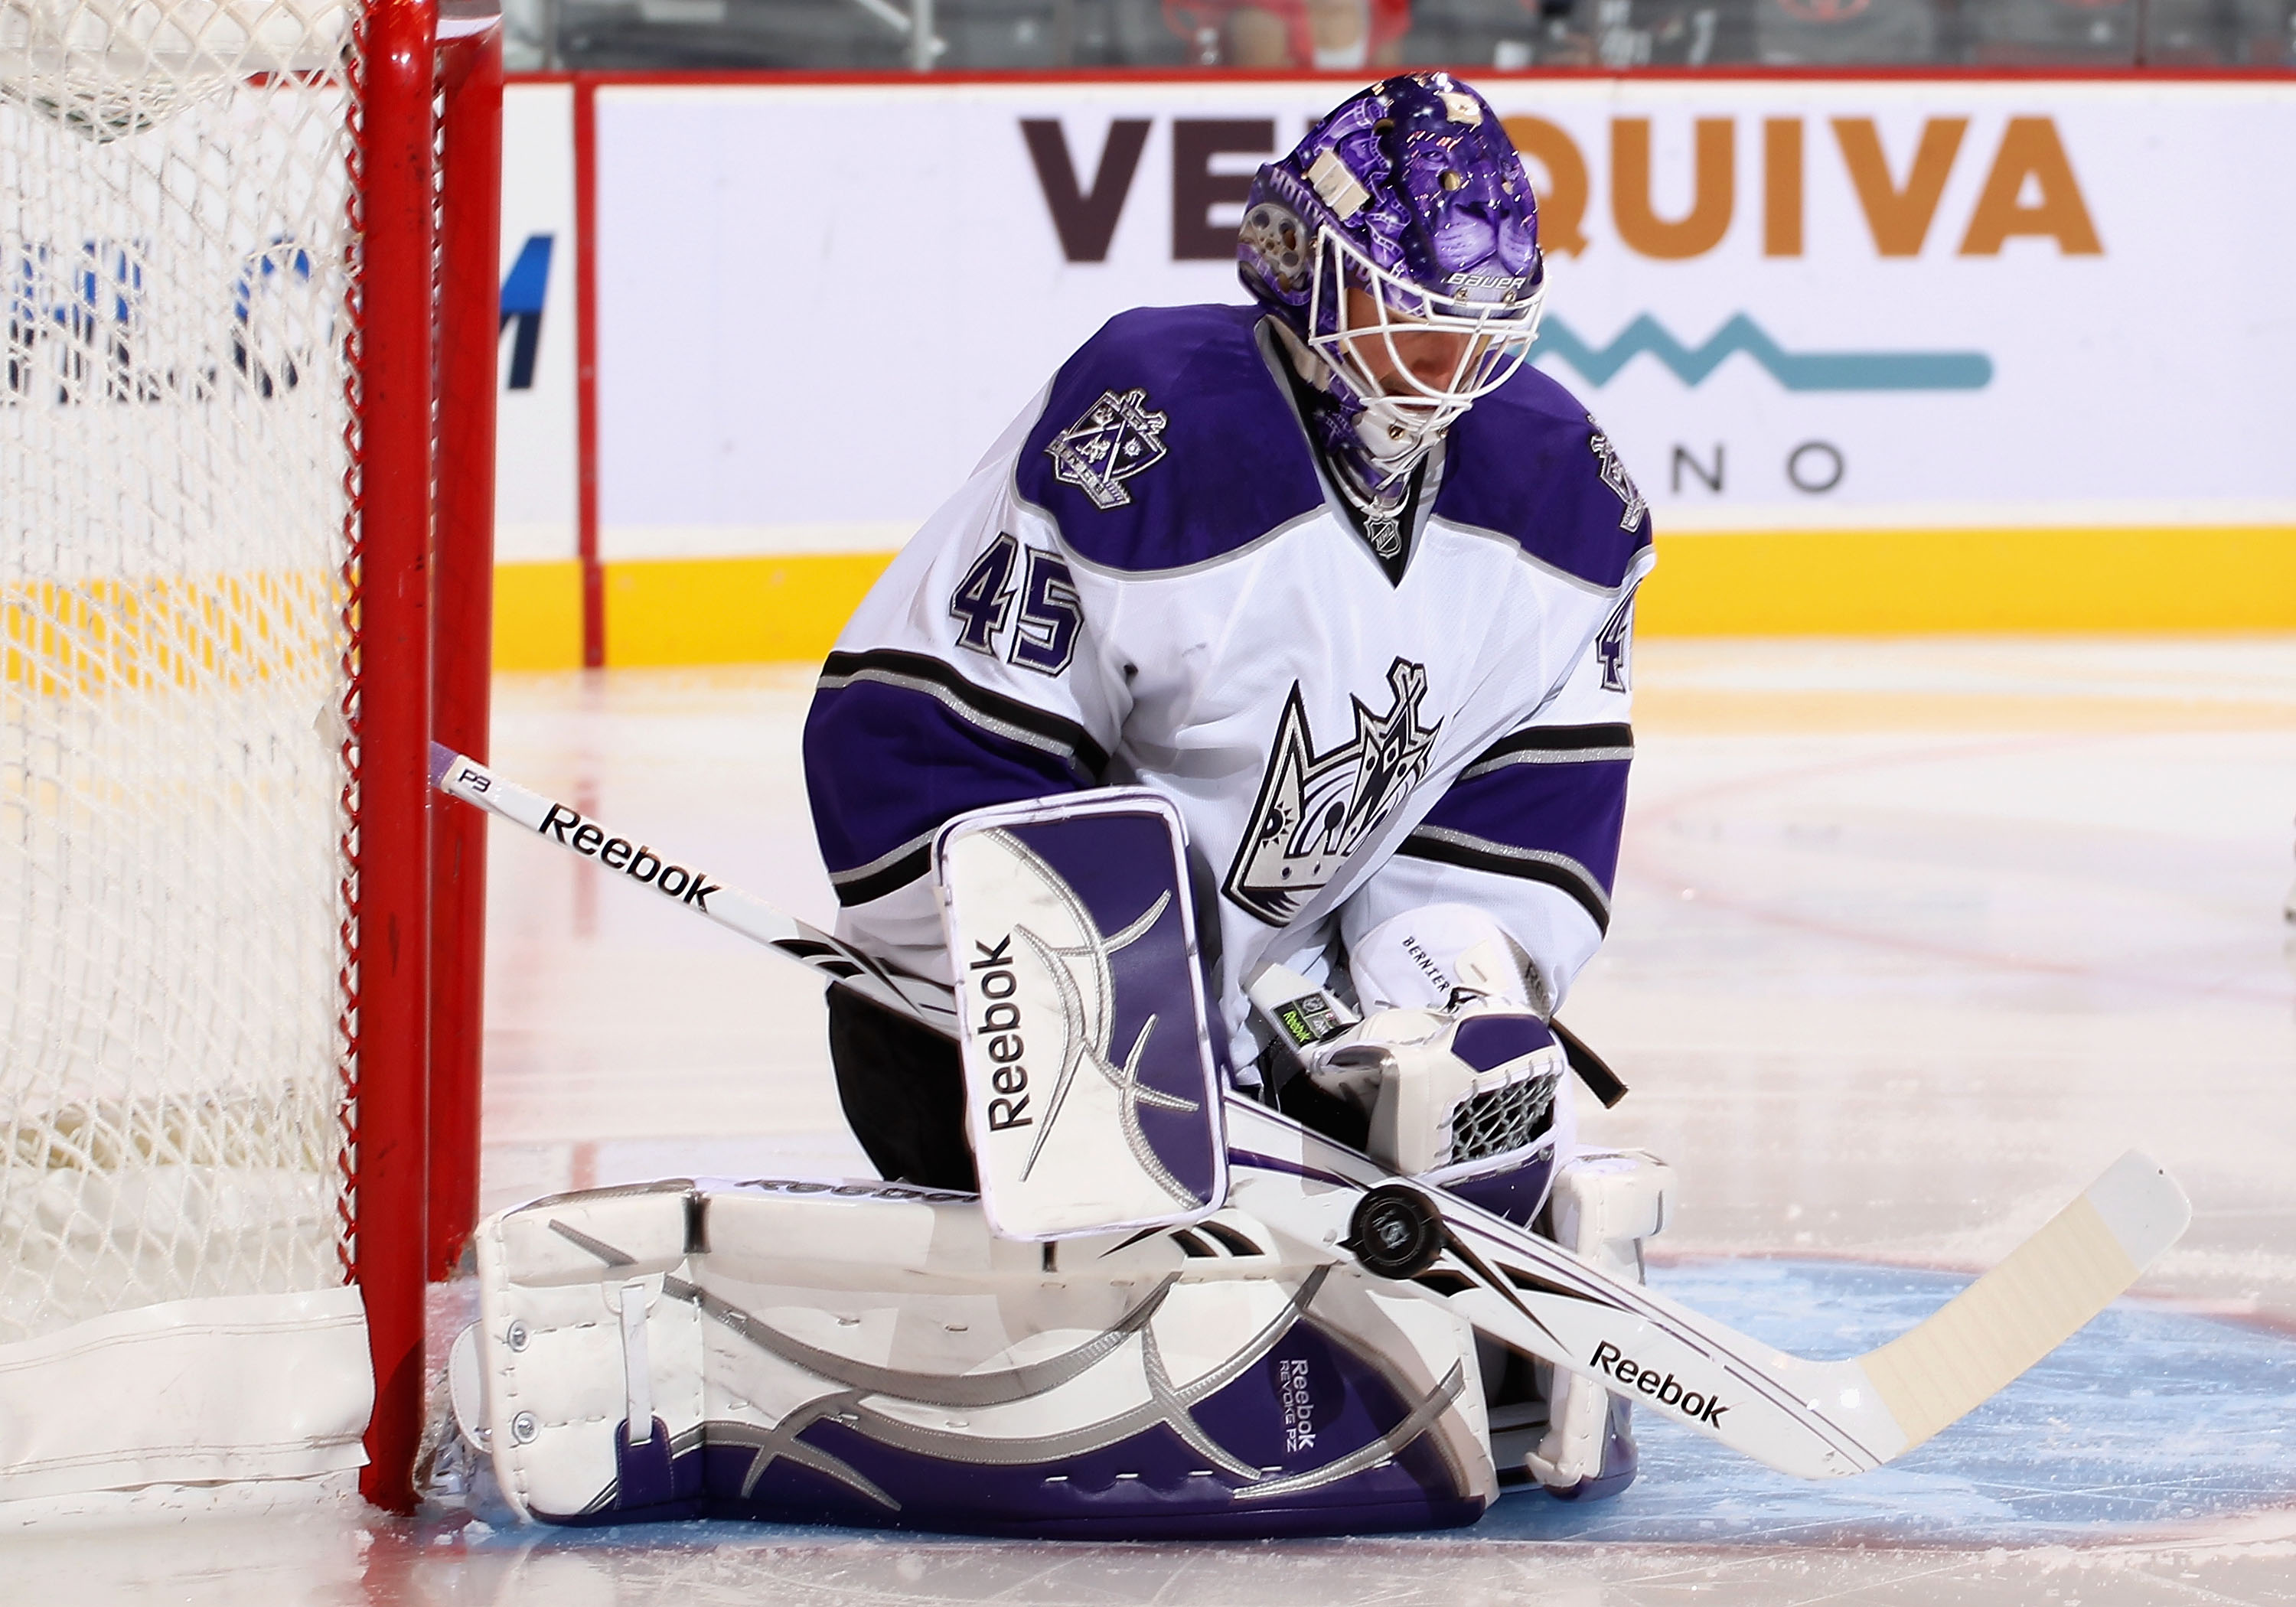 GLENDALE, AZ - SEPTEMBER 23:  Goaltender Jonathan Bernier #45 of the Los Angeles Kings makes a stick save on the shot from the Phoenix Coyotes during the preseason NHL game at Jobing.com Arena on September 23, 2010 in Glendale, Arizona. The Coyotes defeat